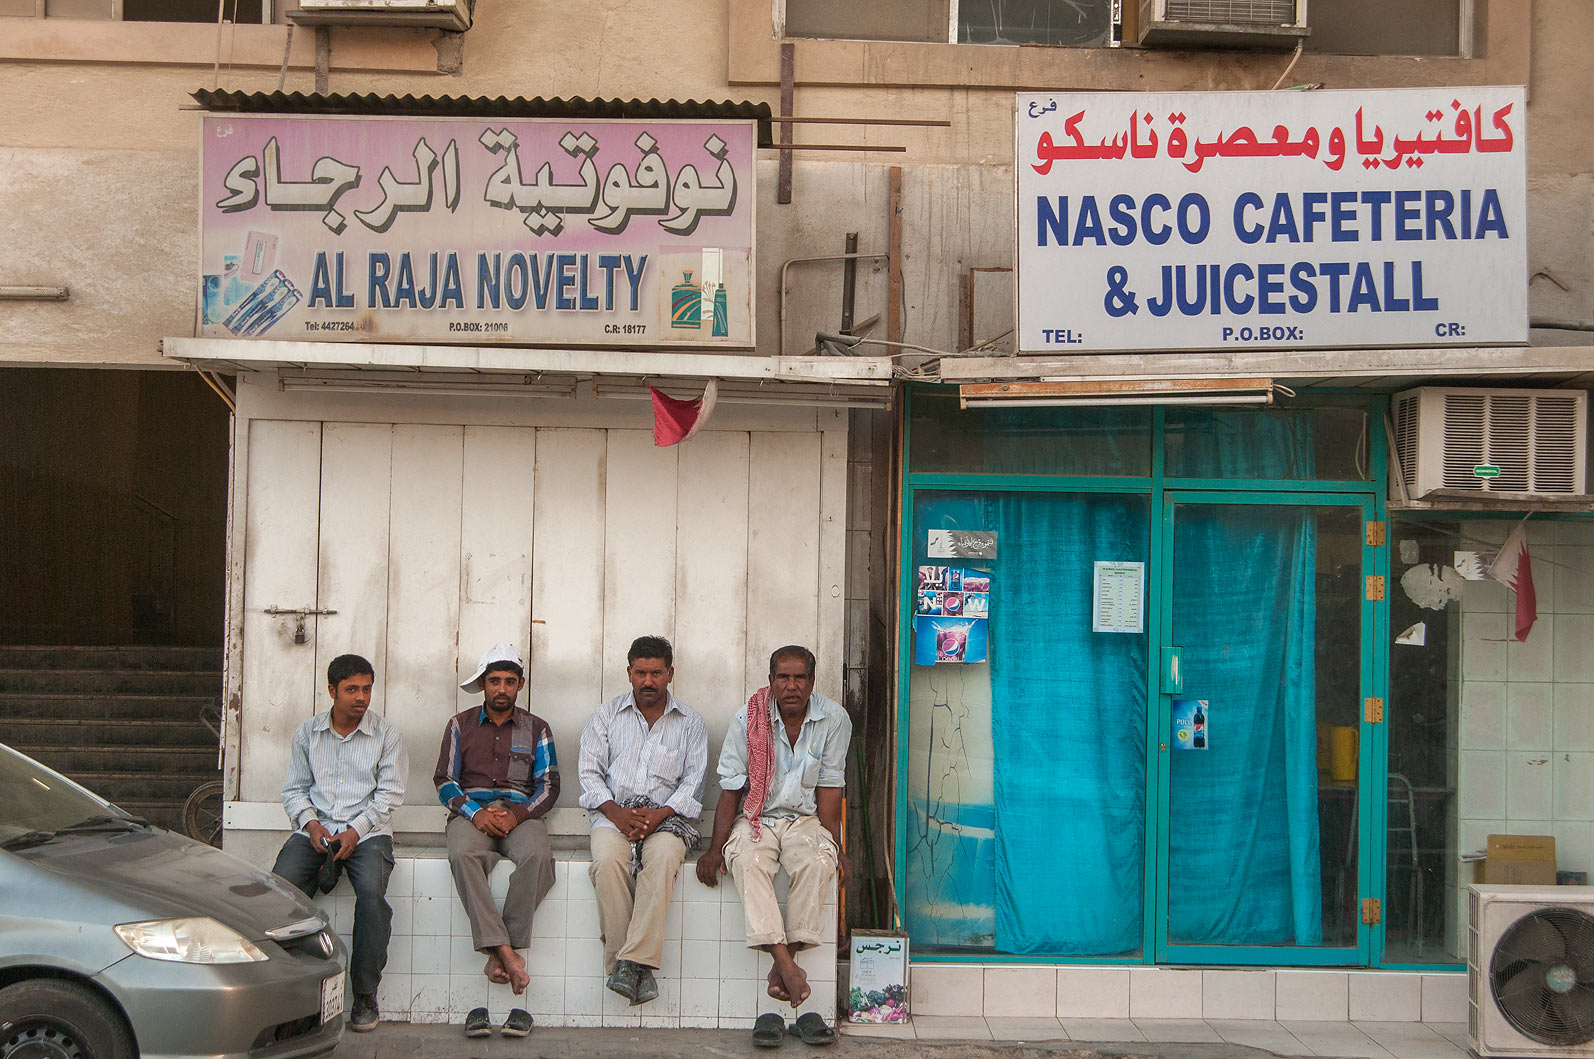 People sitting near Nasco Cafeteria and Juice...St., Musheirib area. Doha, Qatar